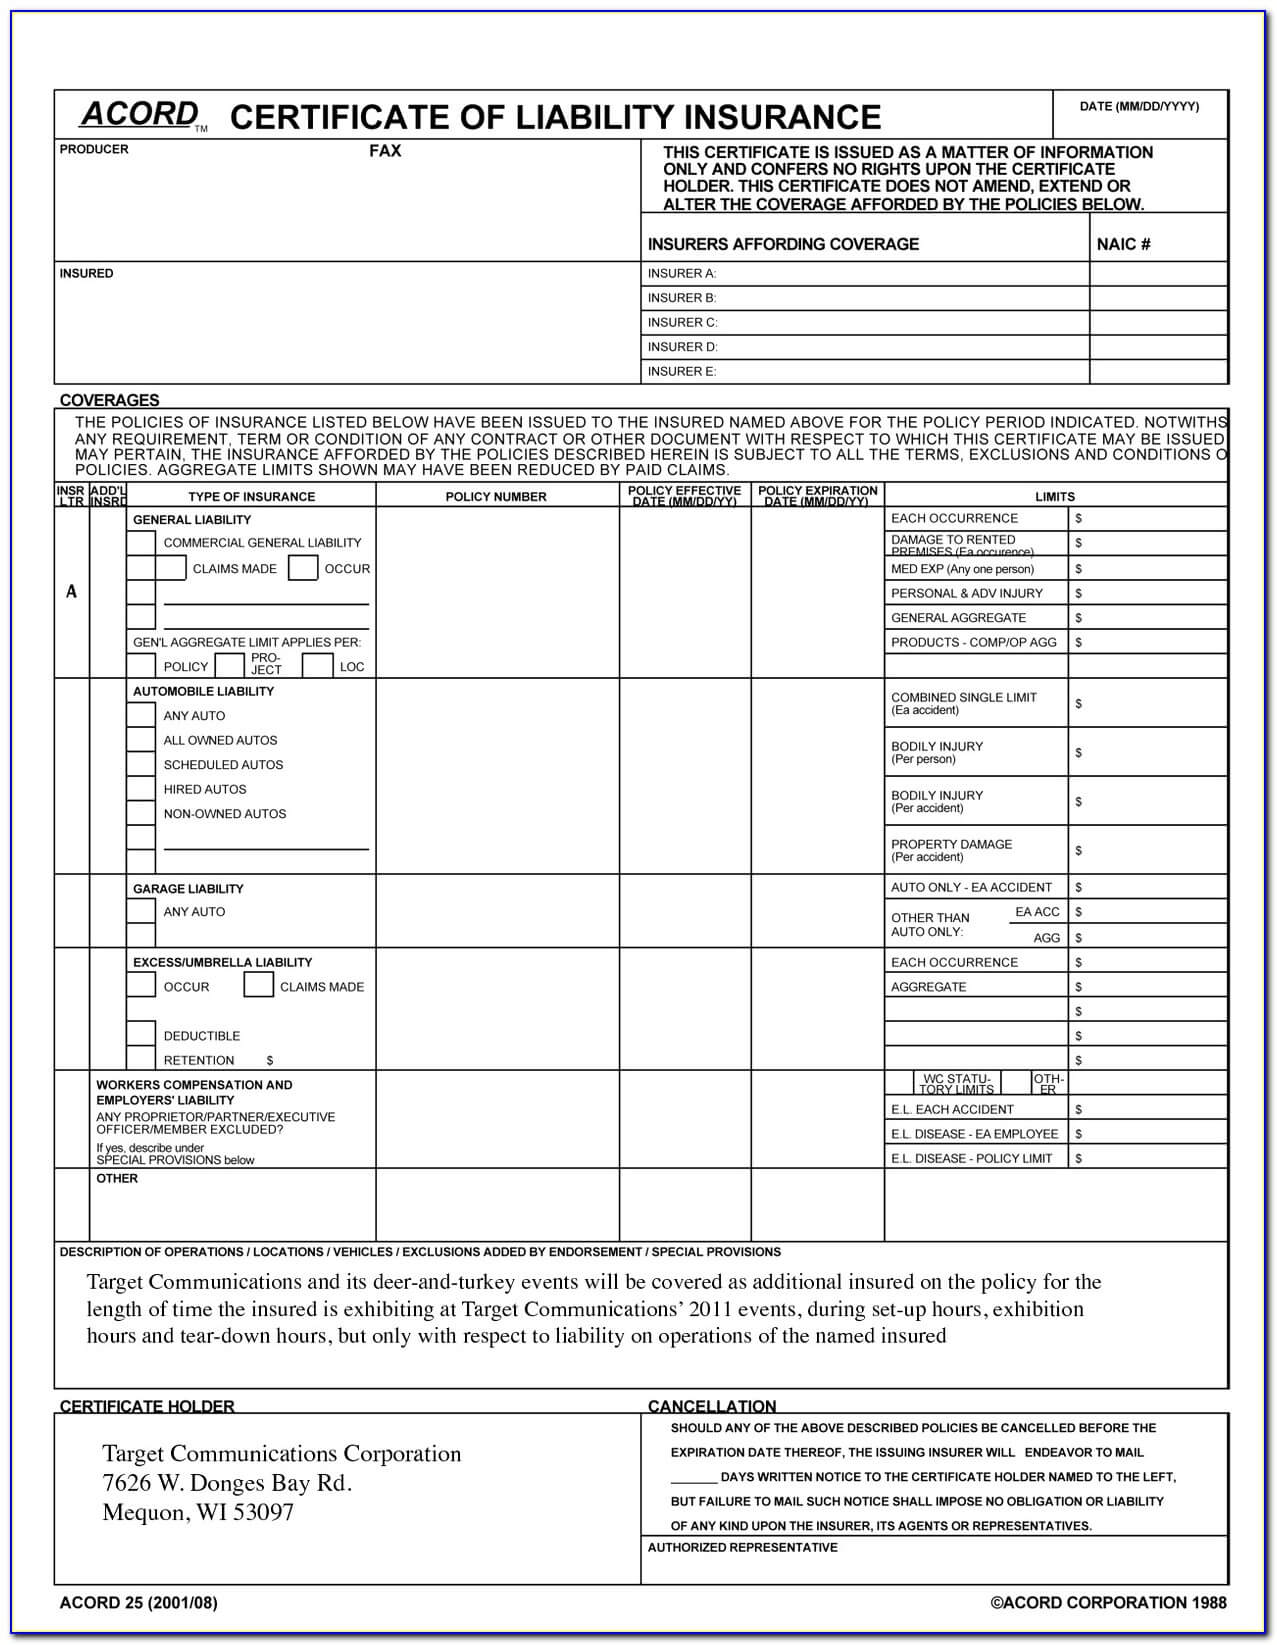 Acord Certificate Of Liability Insurance Template Top For Certificate Of Liability Insurance Template